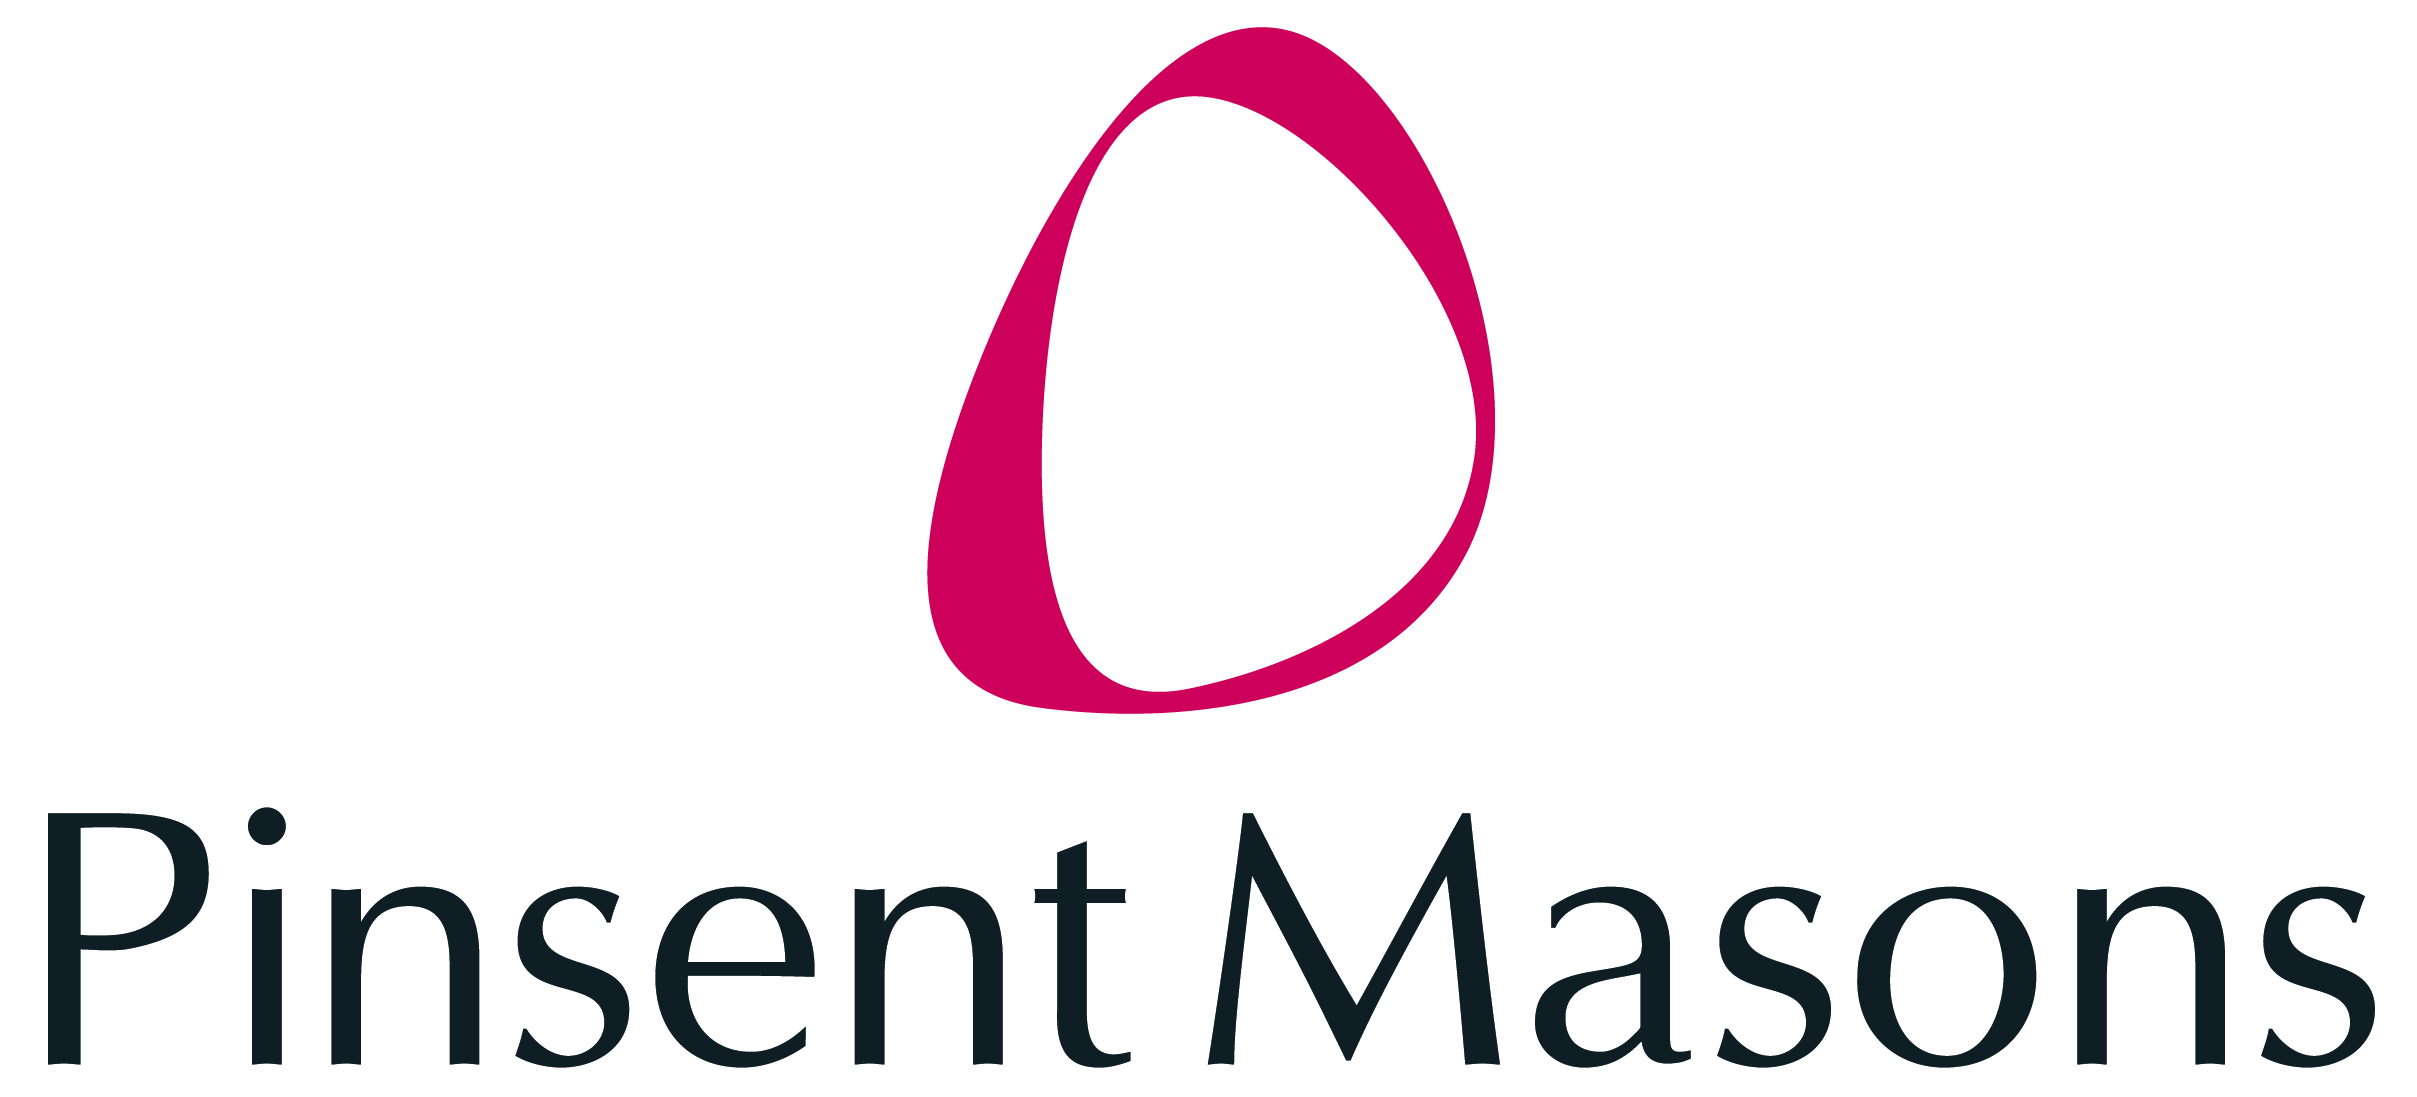 Pinsent Masons Event 2020